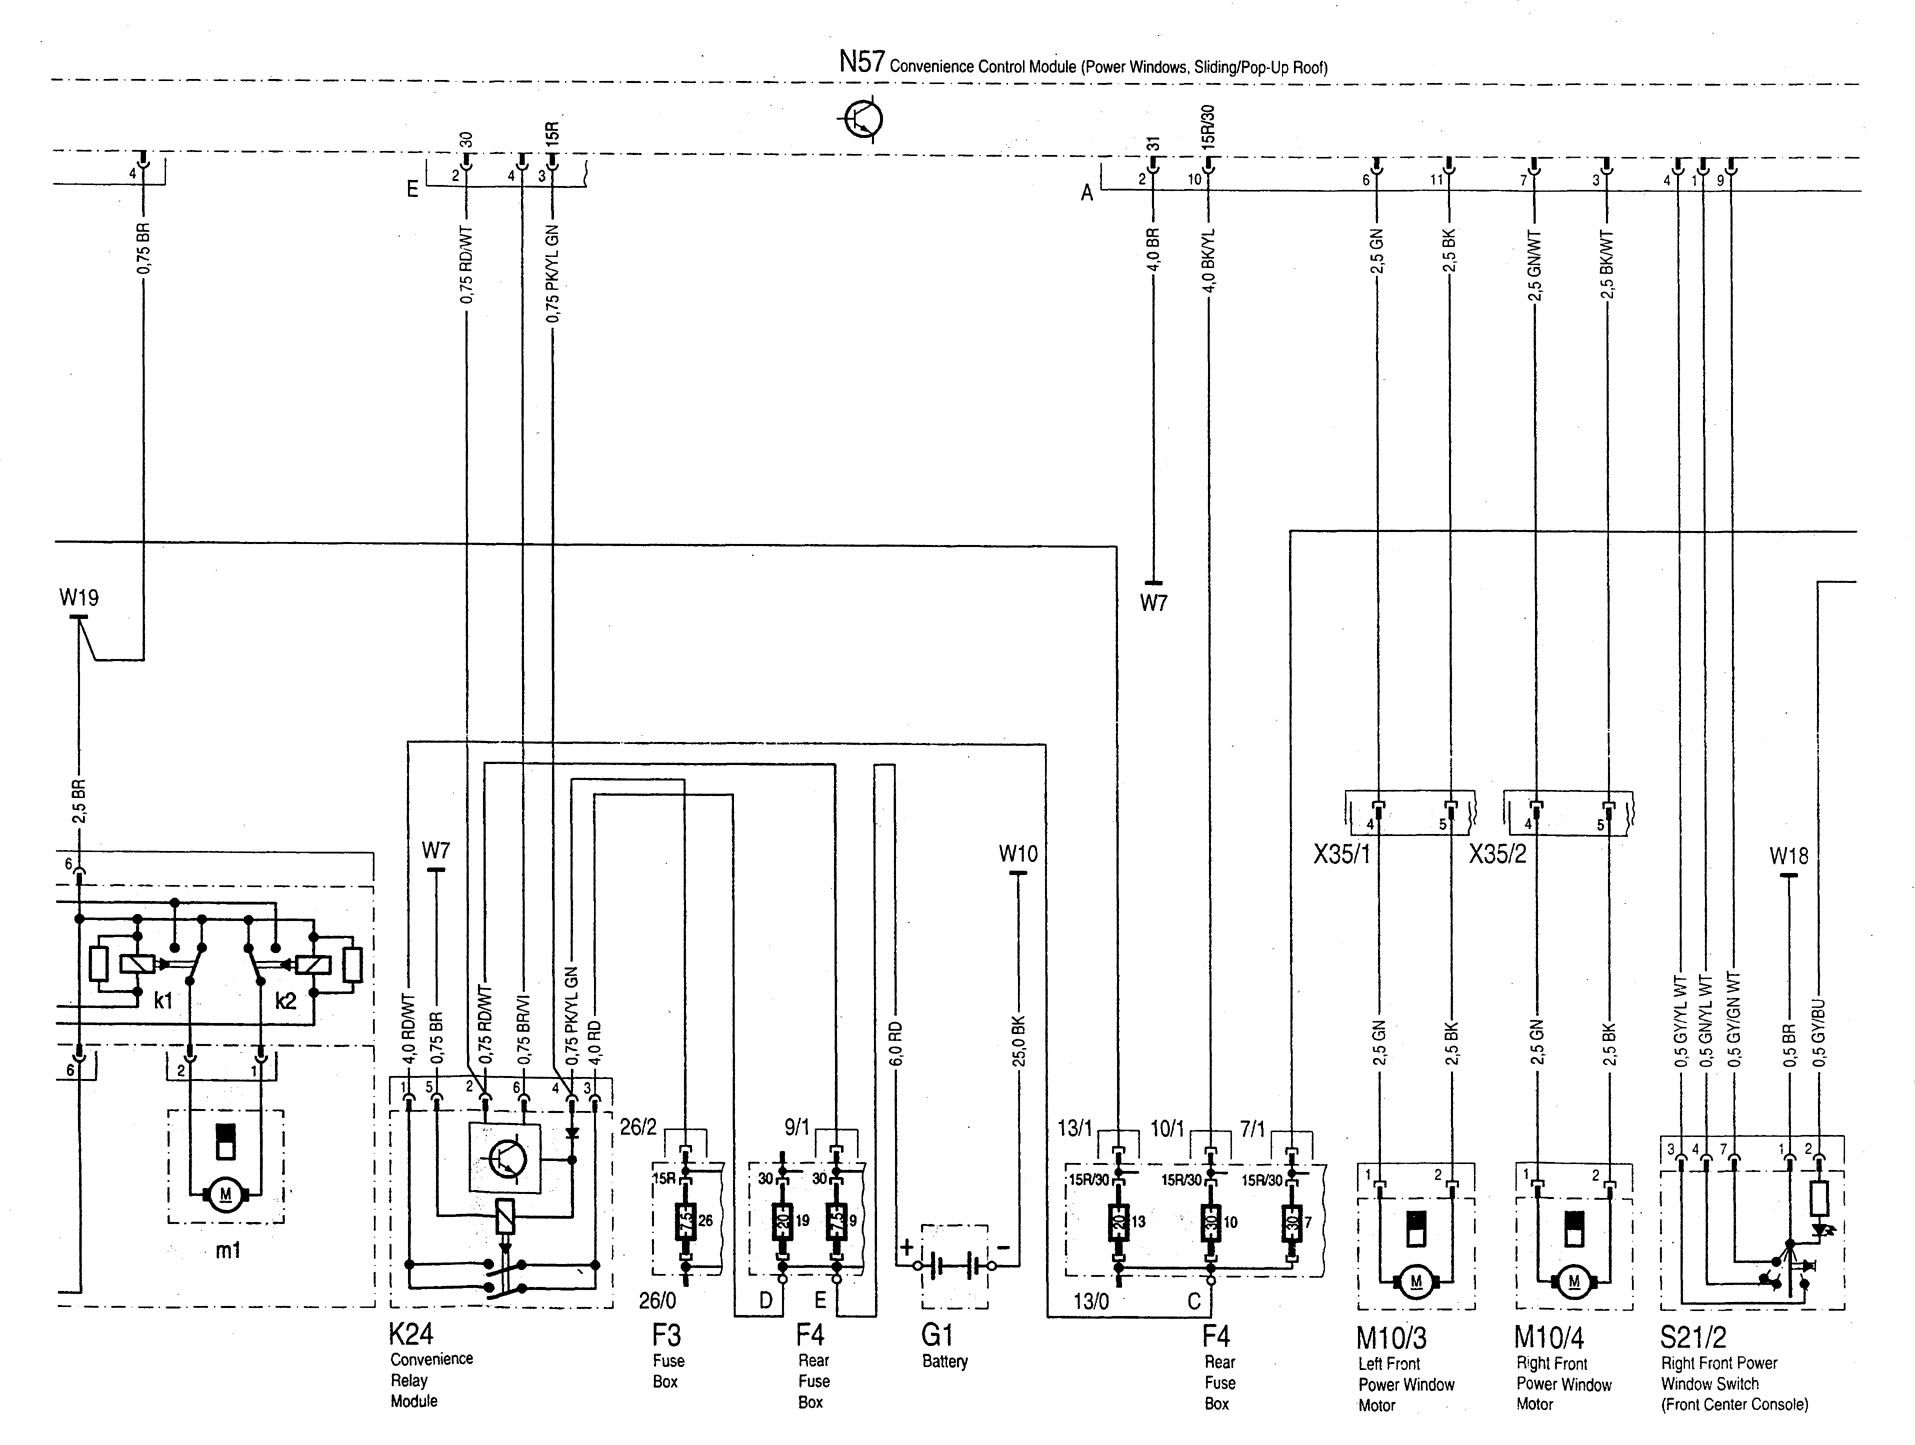 Mercedes Benz C280 1994 1997 Wiring Diagrams Sunroof Chrysler Town Country Diagram C220 Part 2